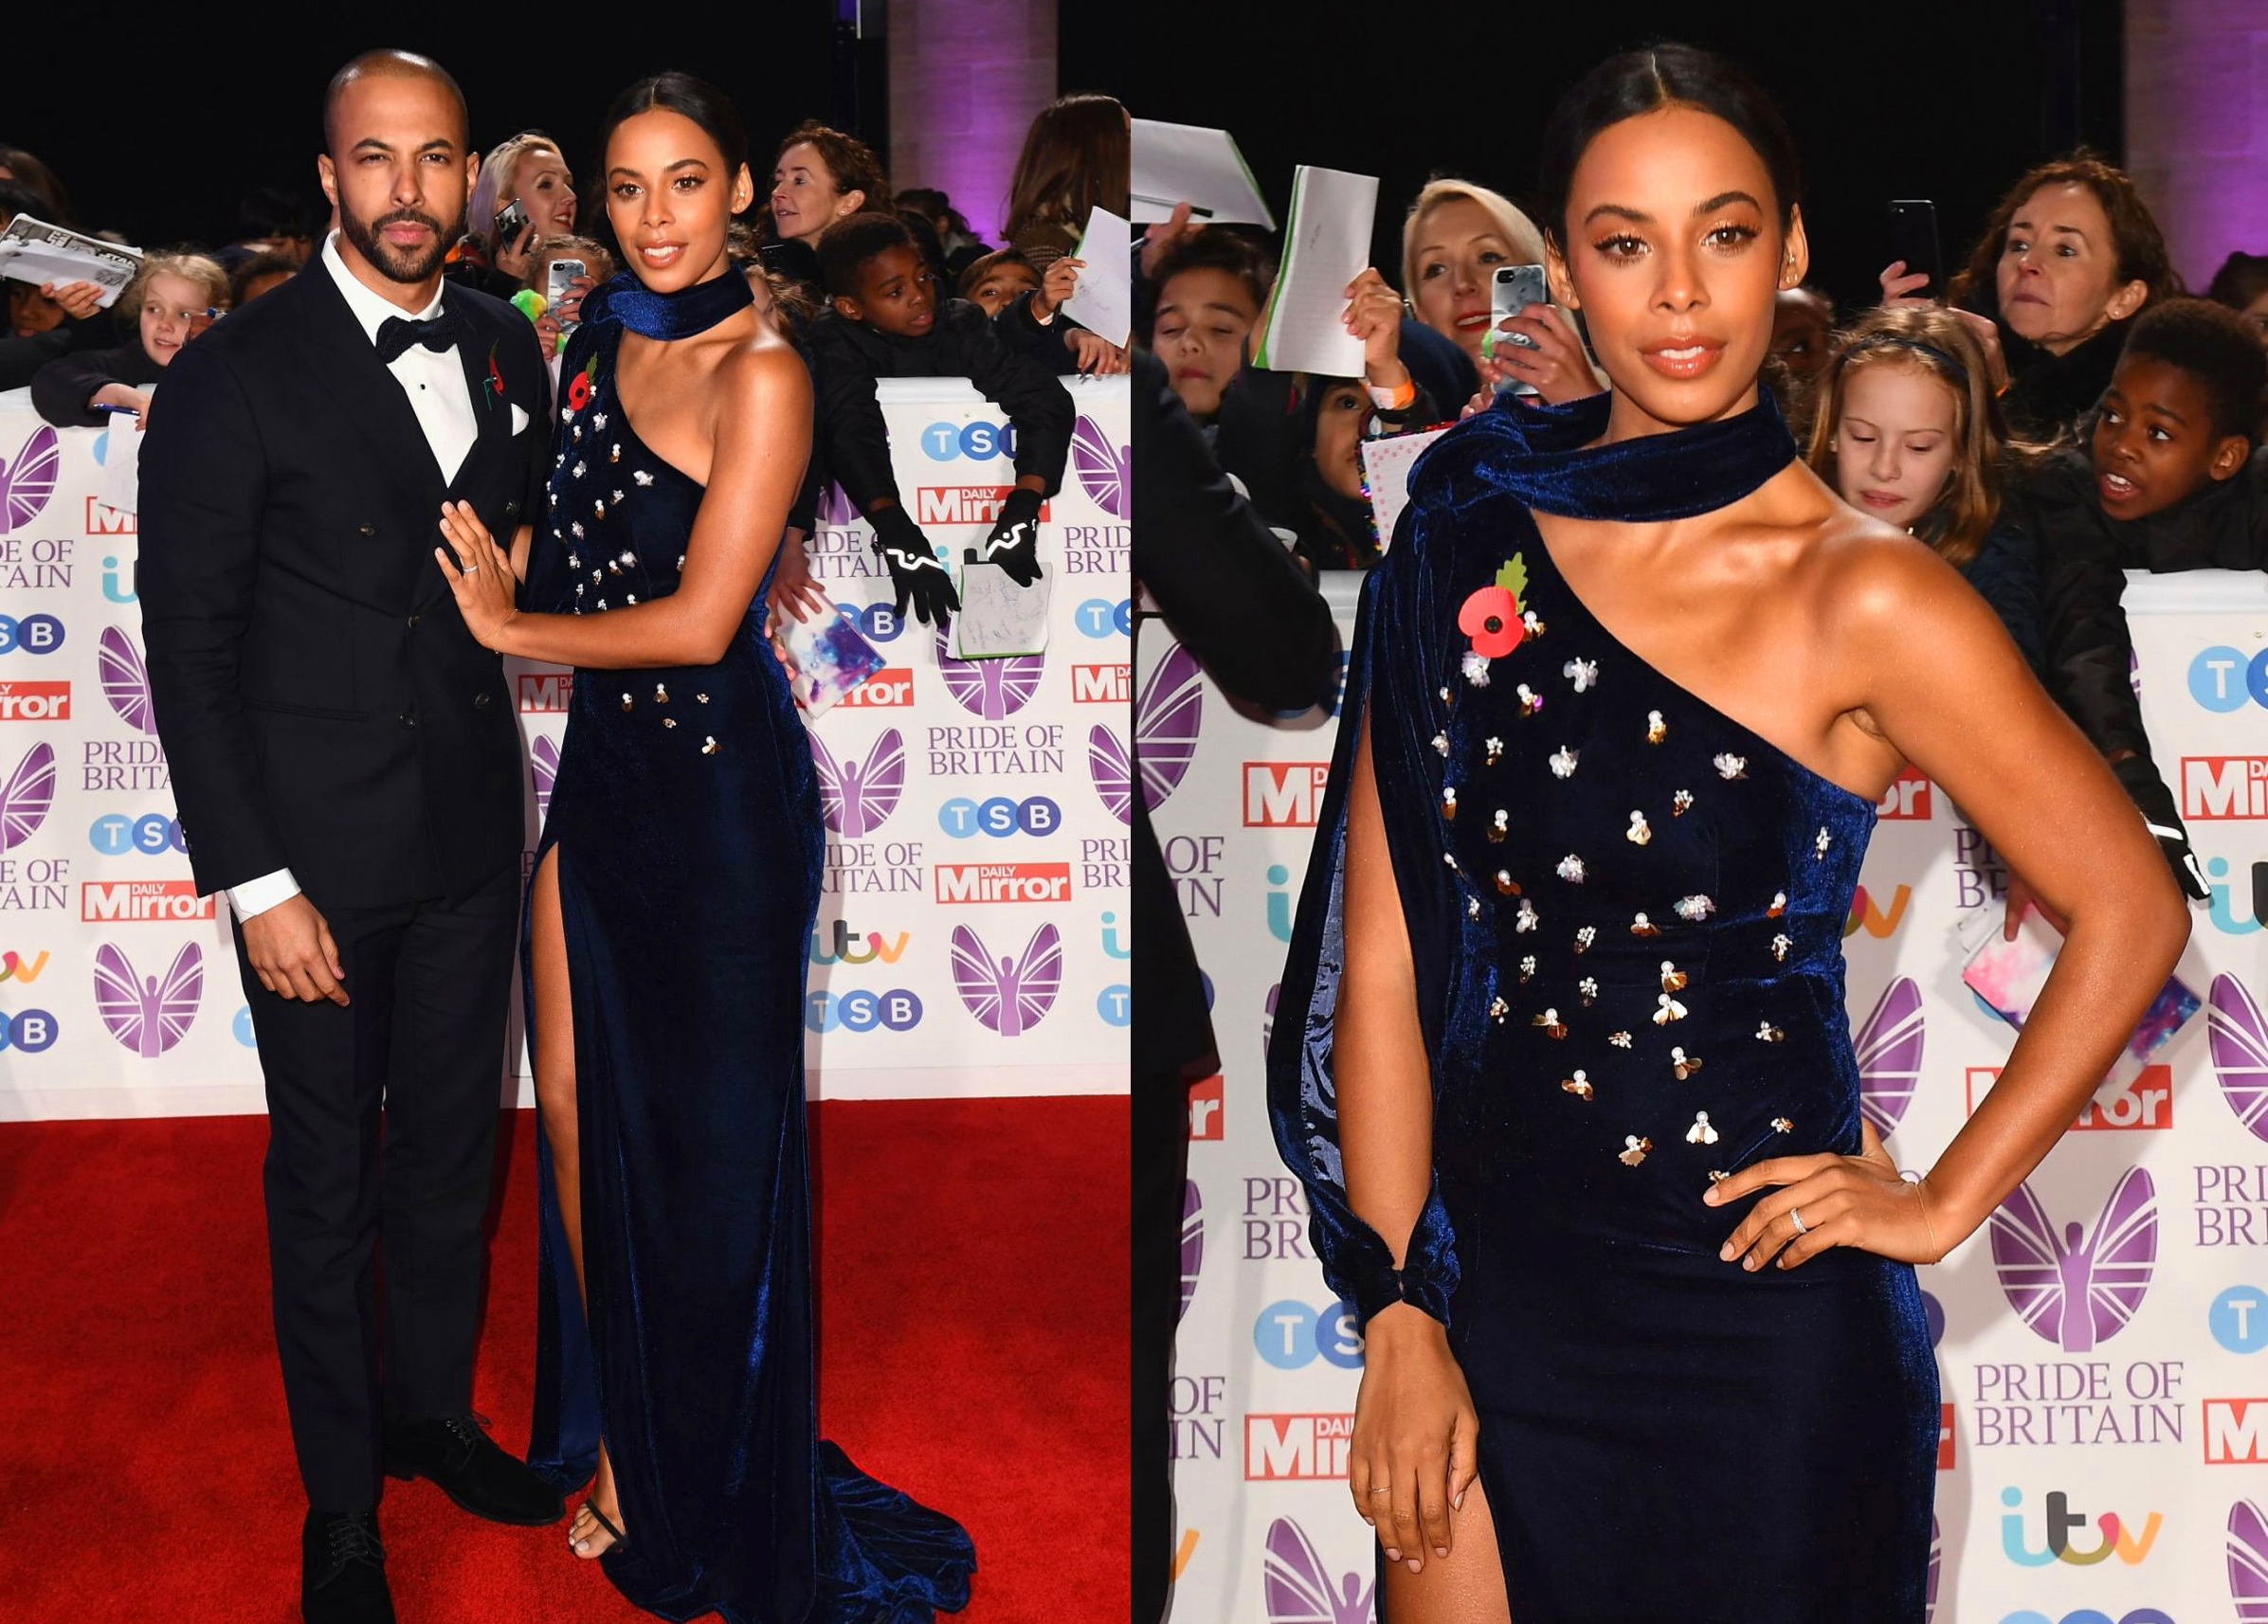 ROCHELLE HUMES DRESSED BY RAQUEL BALENCIA FOR PRIDE OF BRITAIN AWARDS 2018